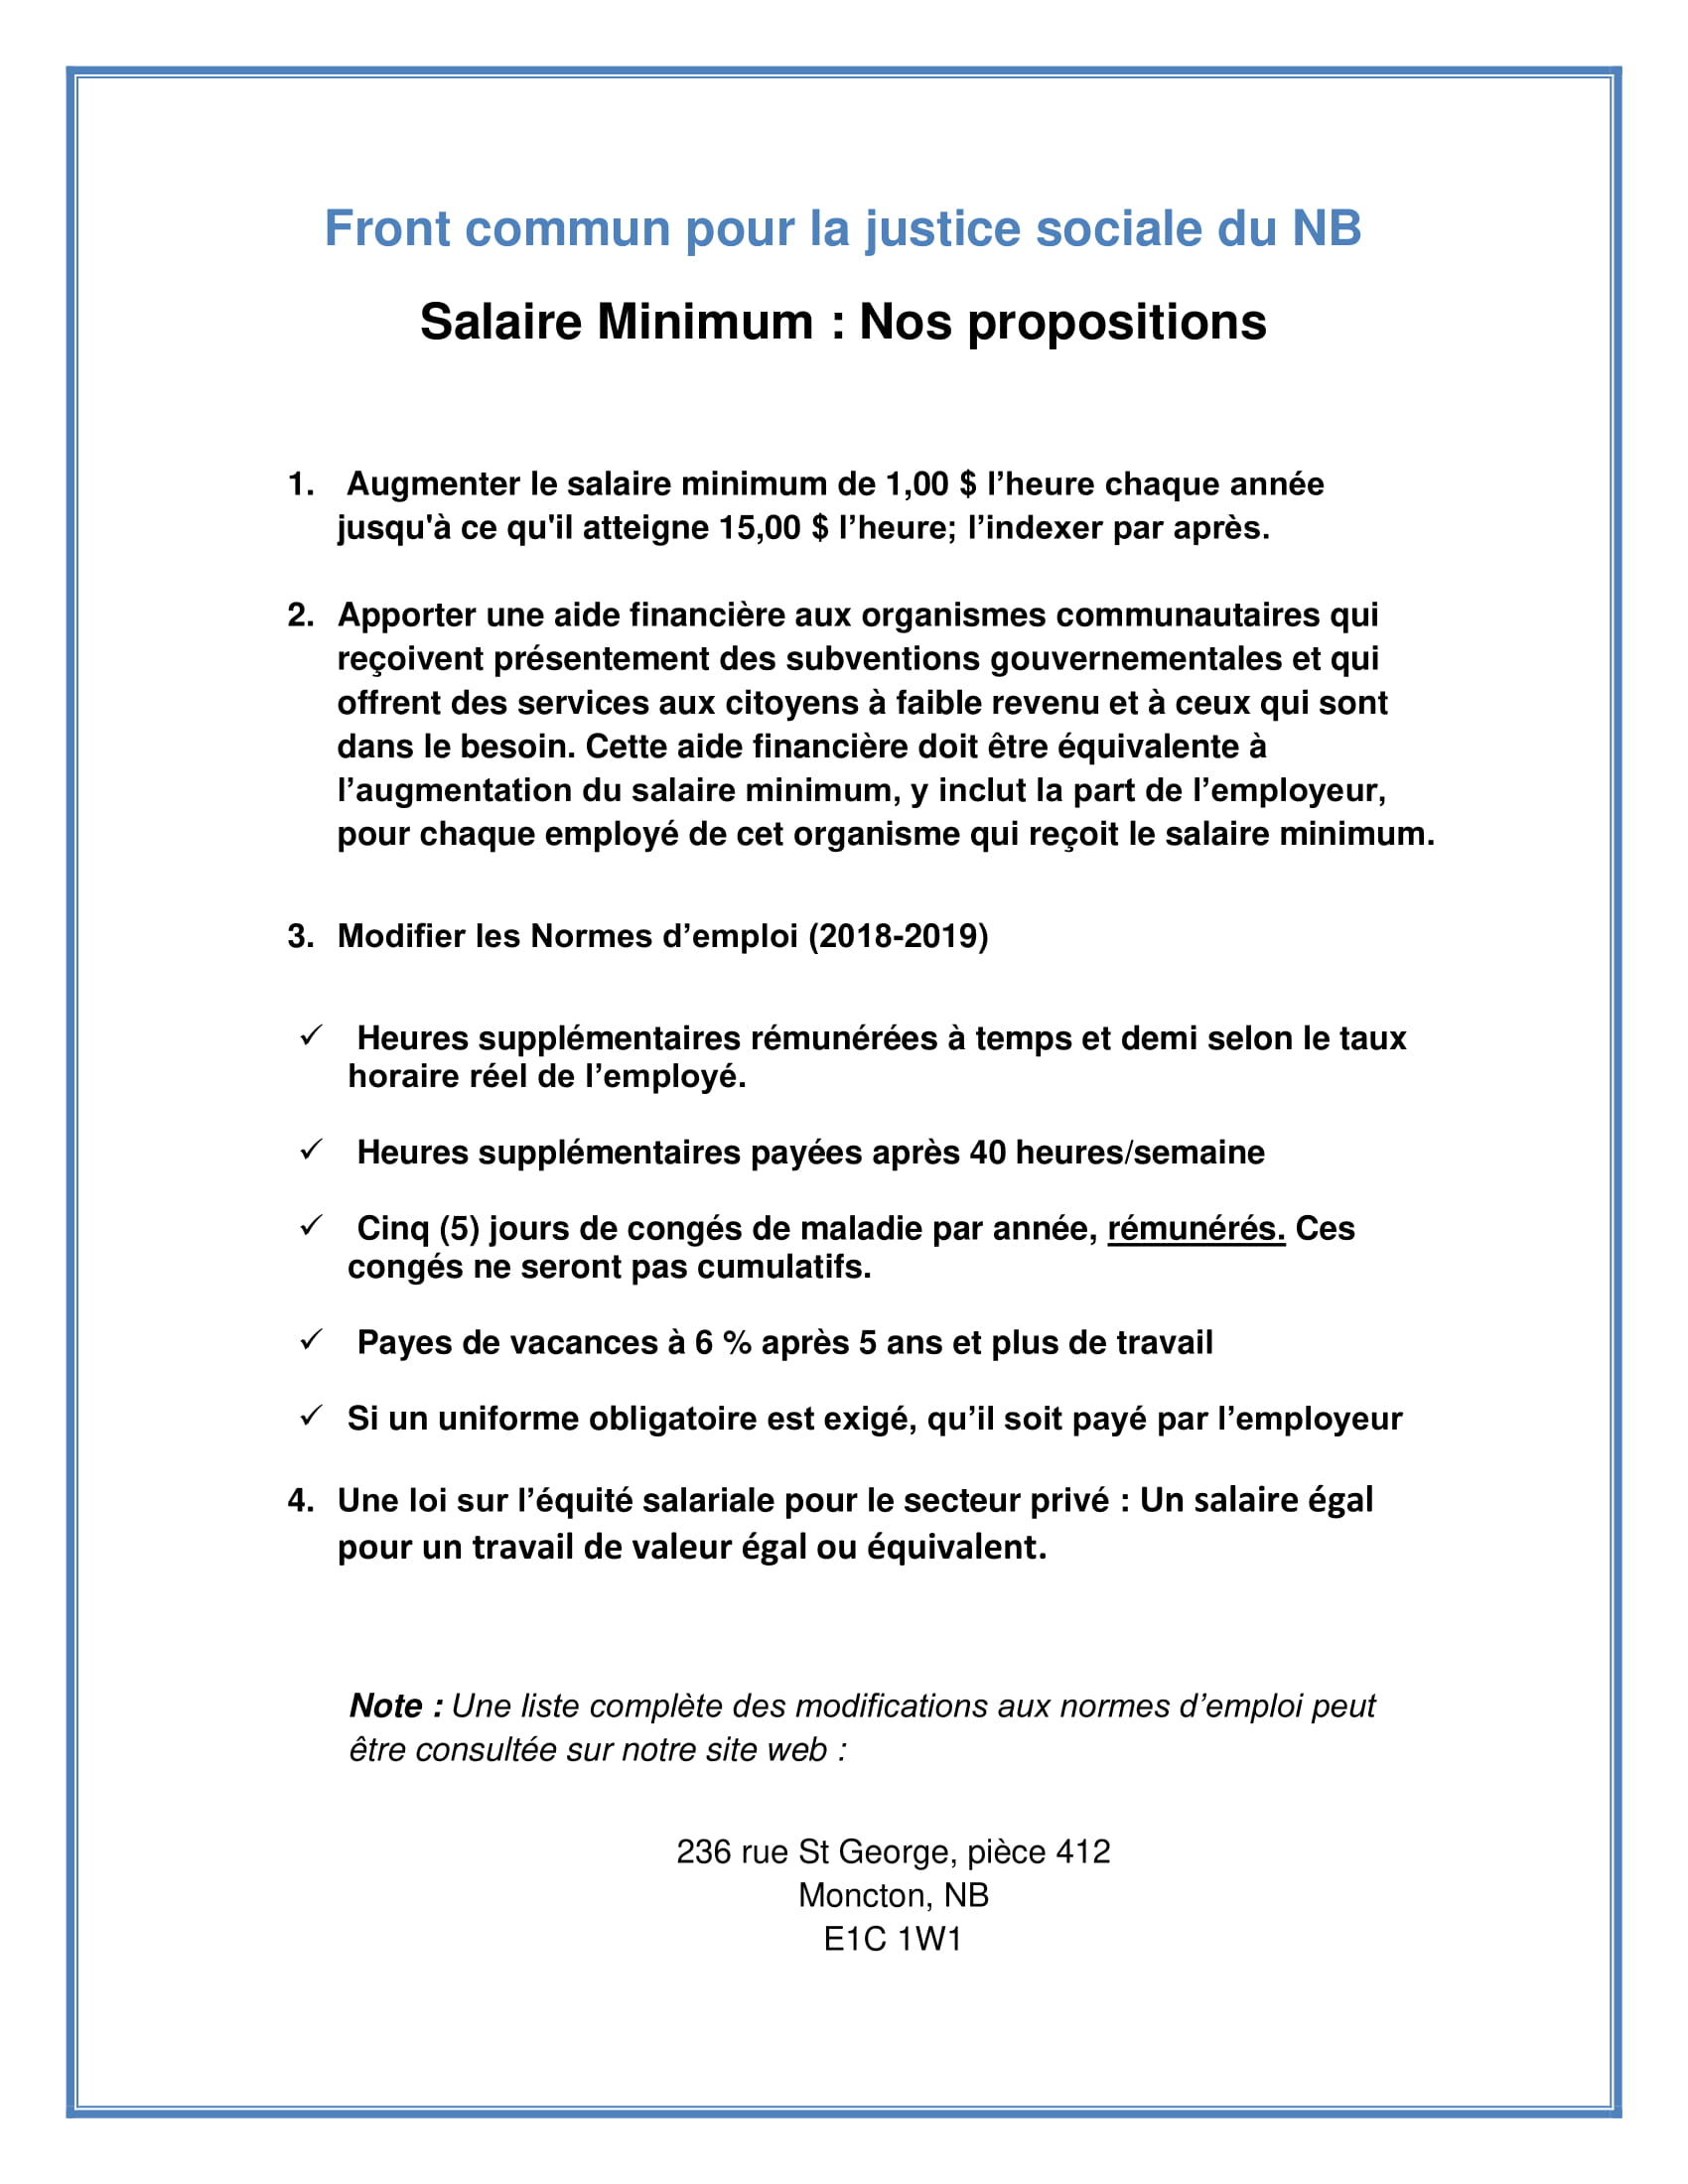 1 page d'information. Salaire minimum. Propositions